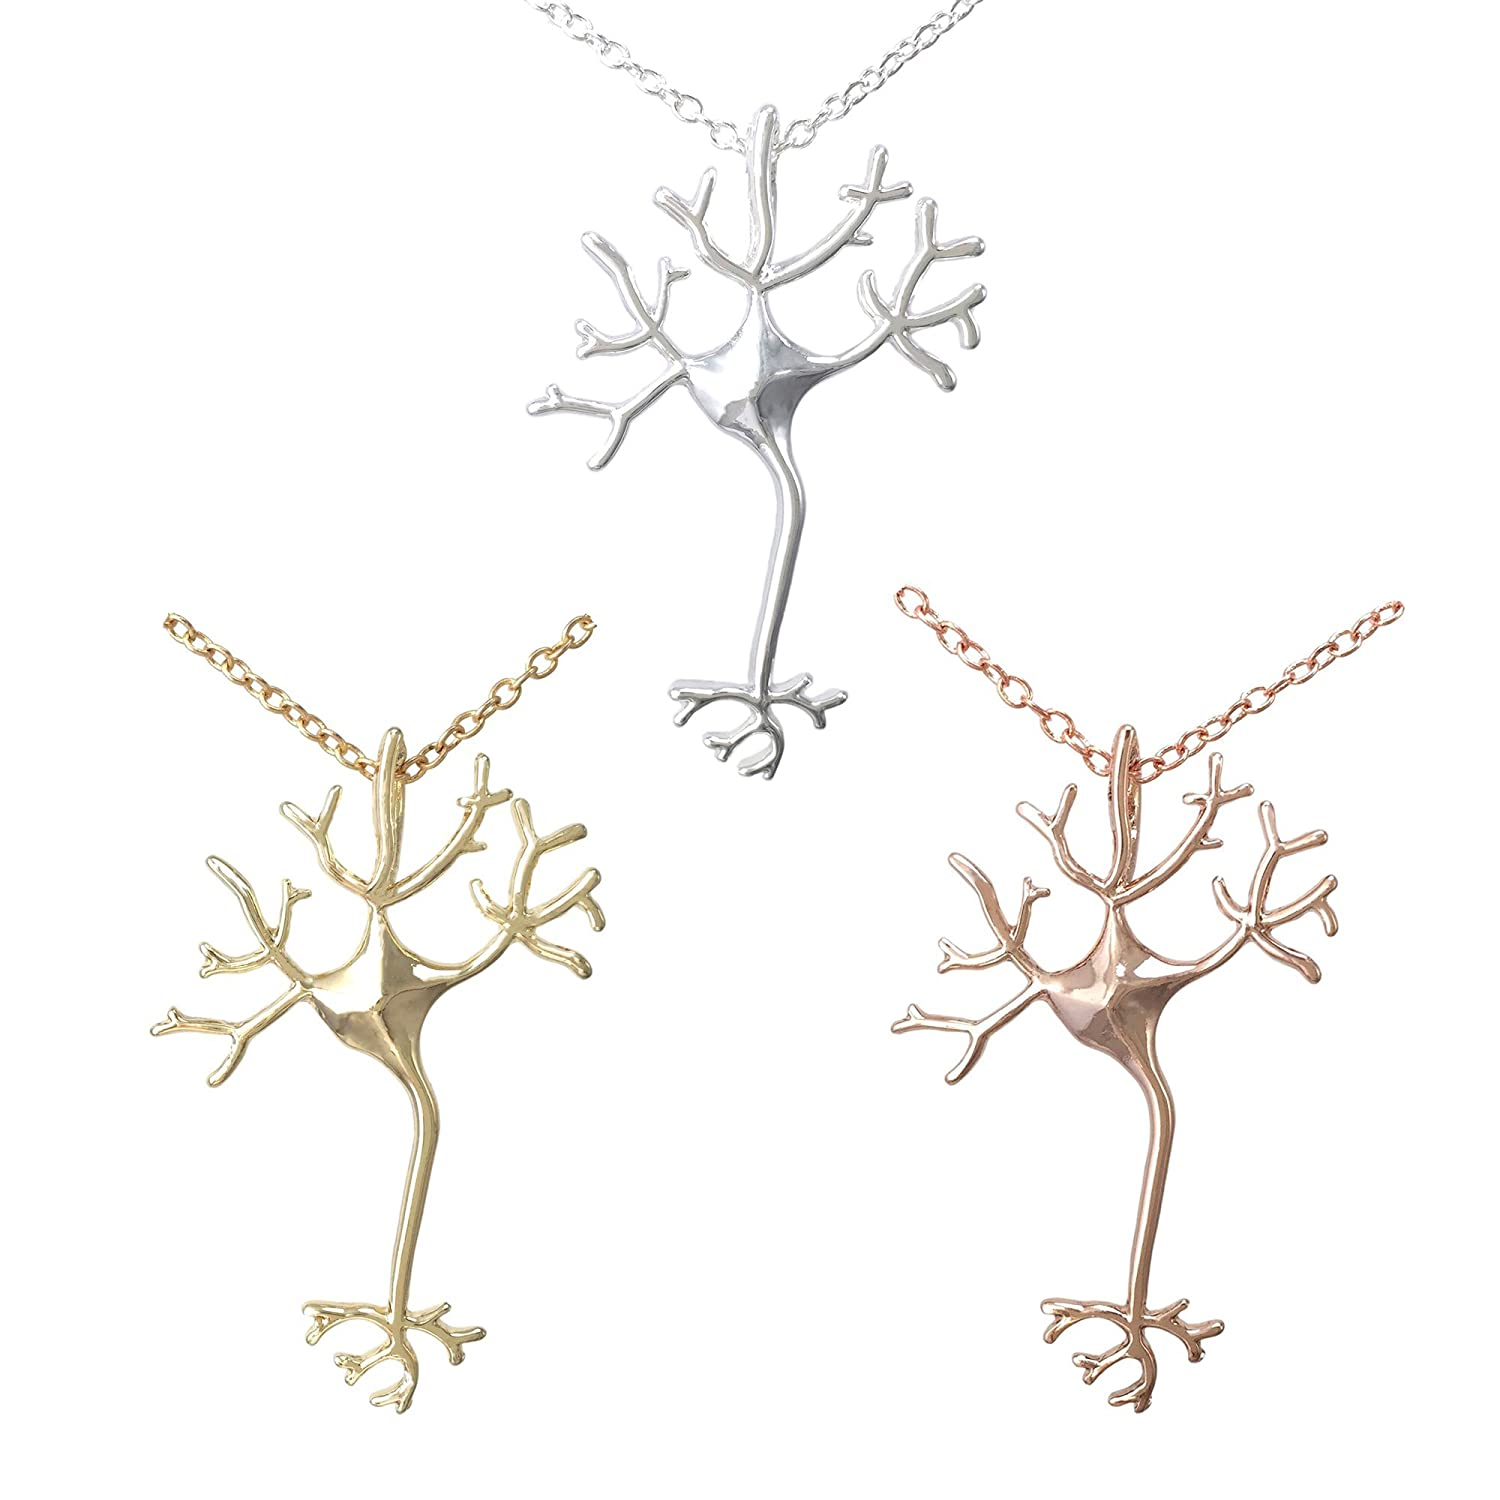 COS (TM) Set of 3 Nerve Cell Necklaces Silver, Gold, and Rose Gold Plated